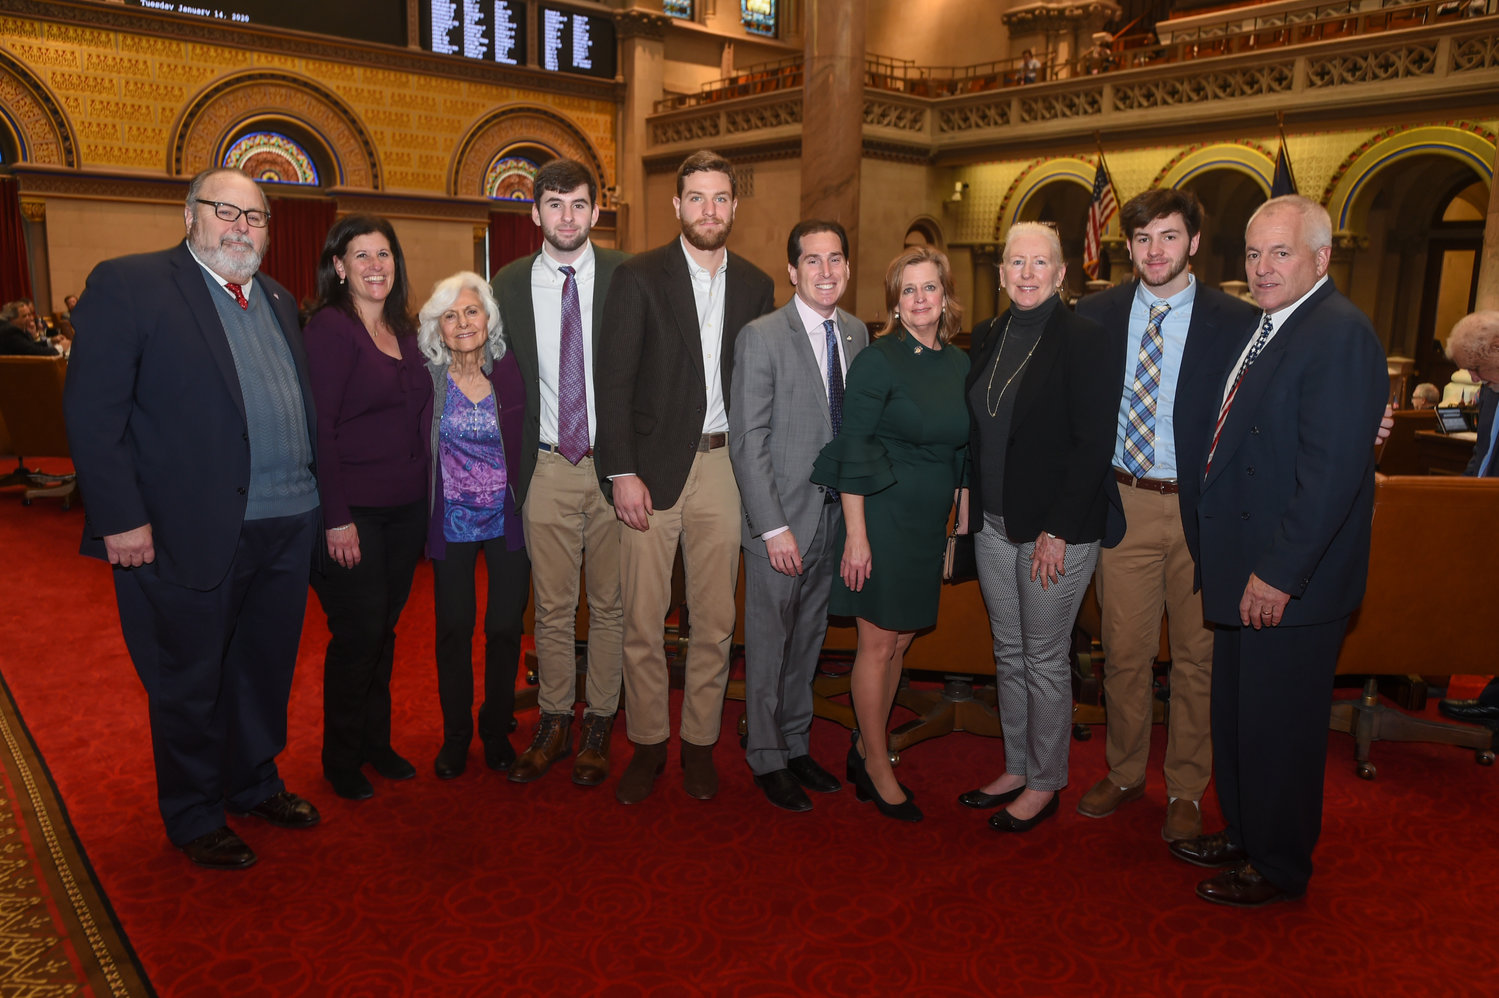 Members of the O'Shea family traveled to Albany last month, where they were recognized by the state legislature.